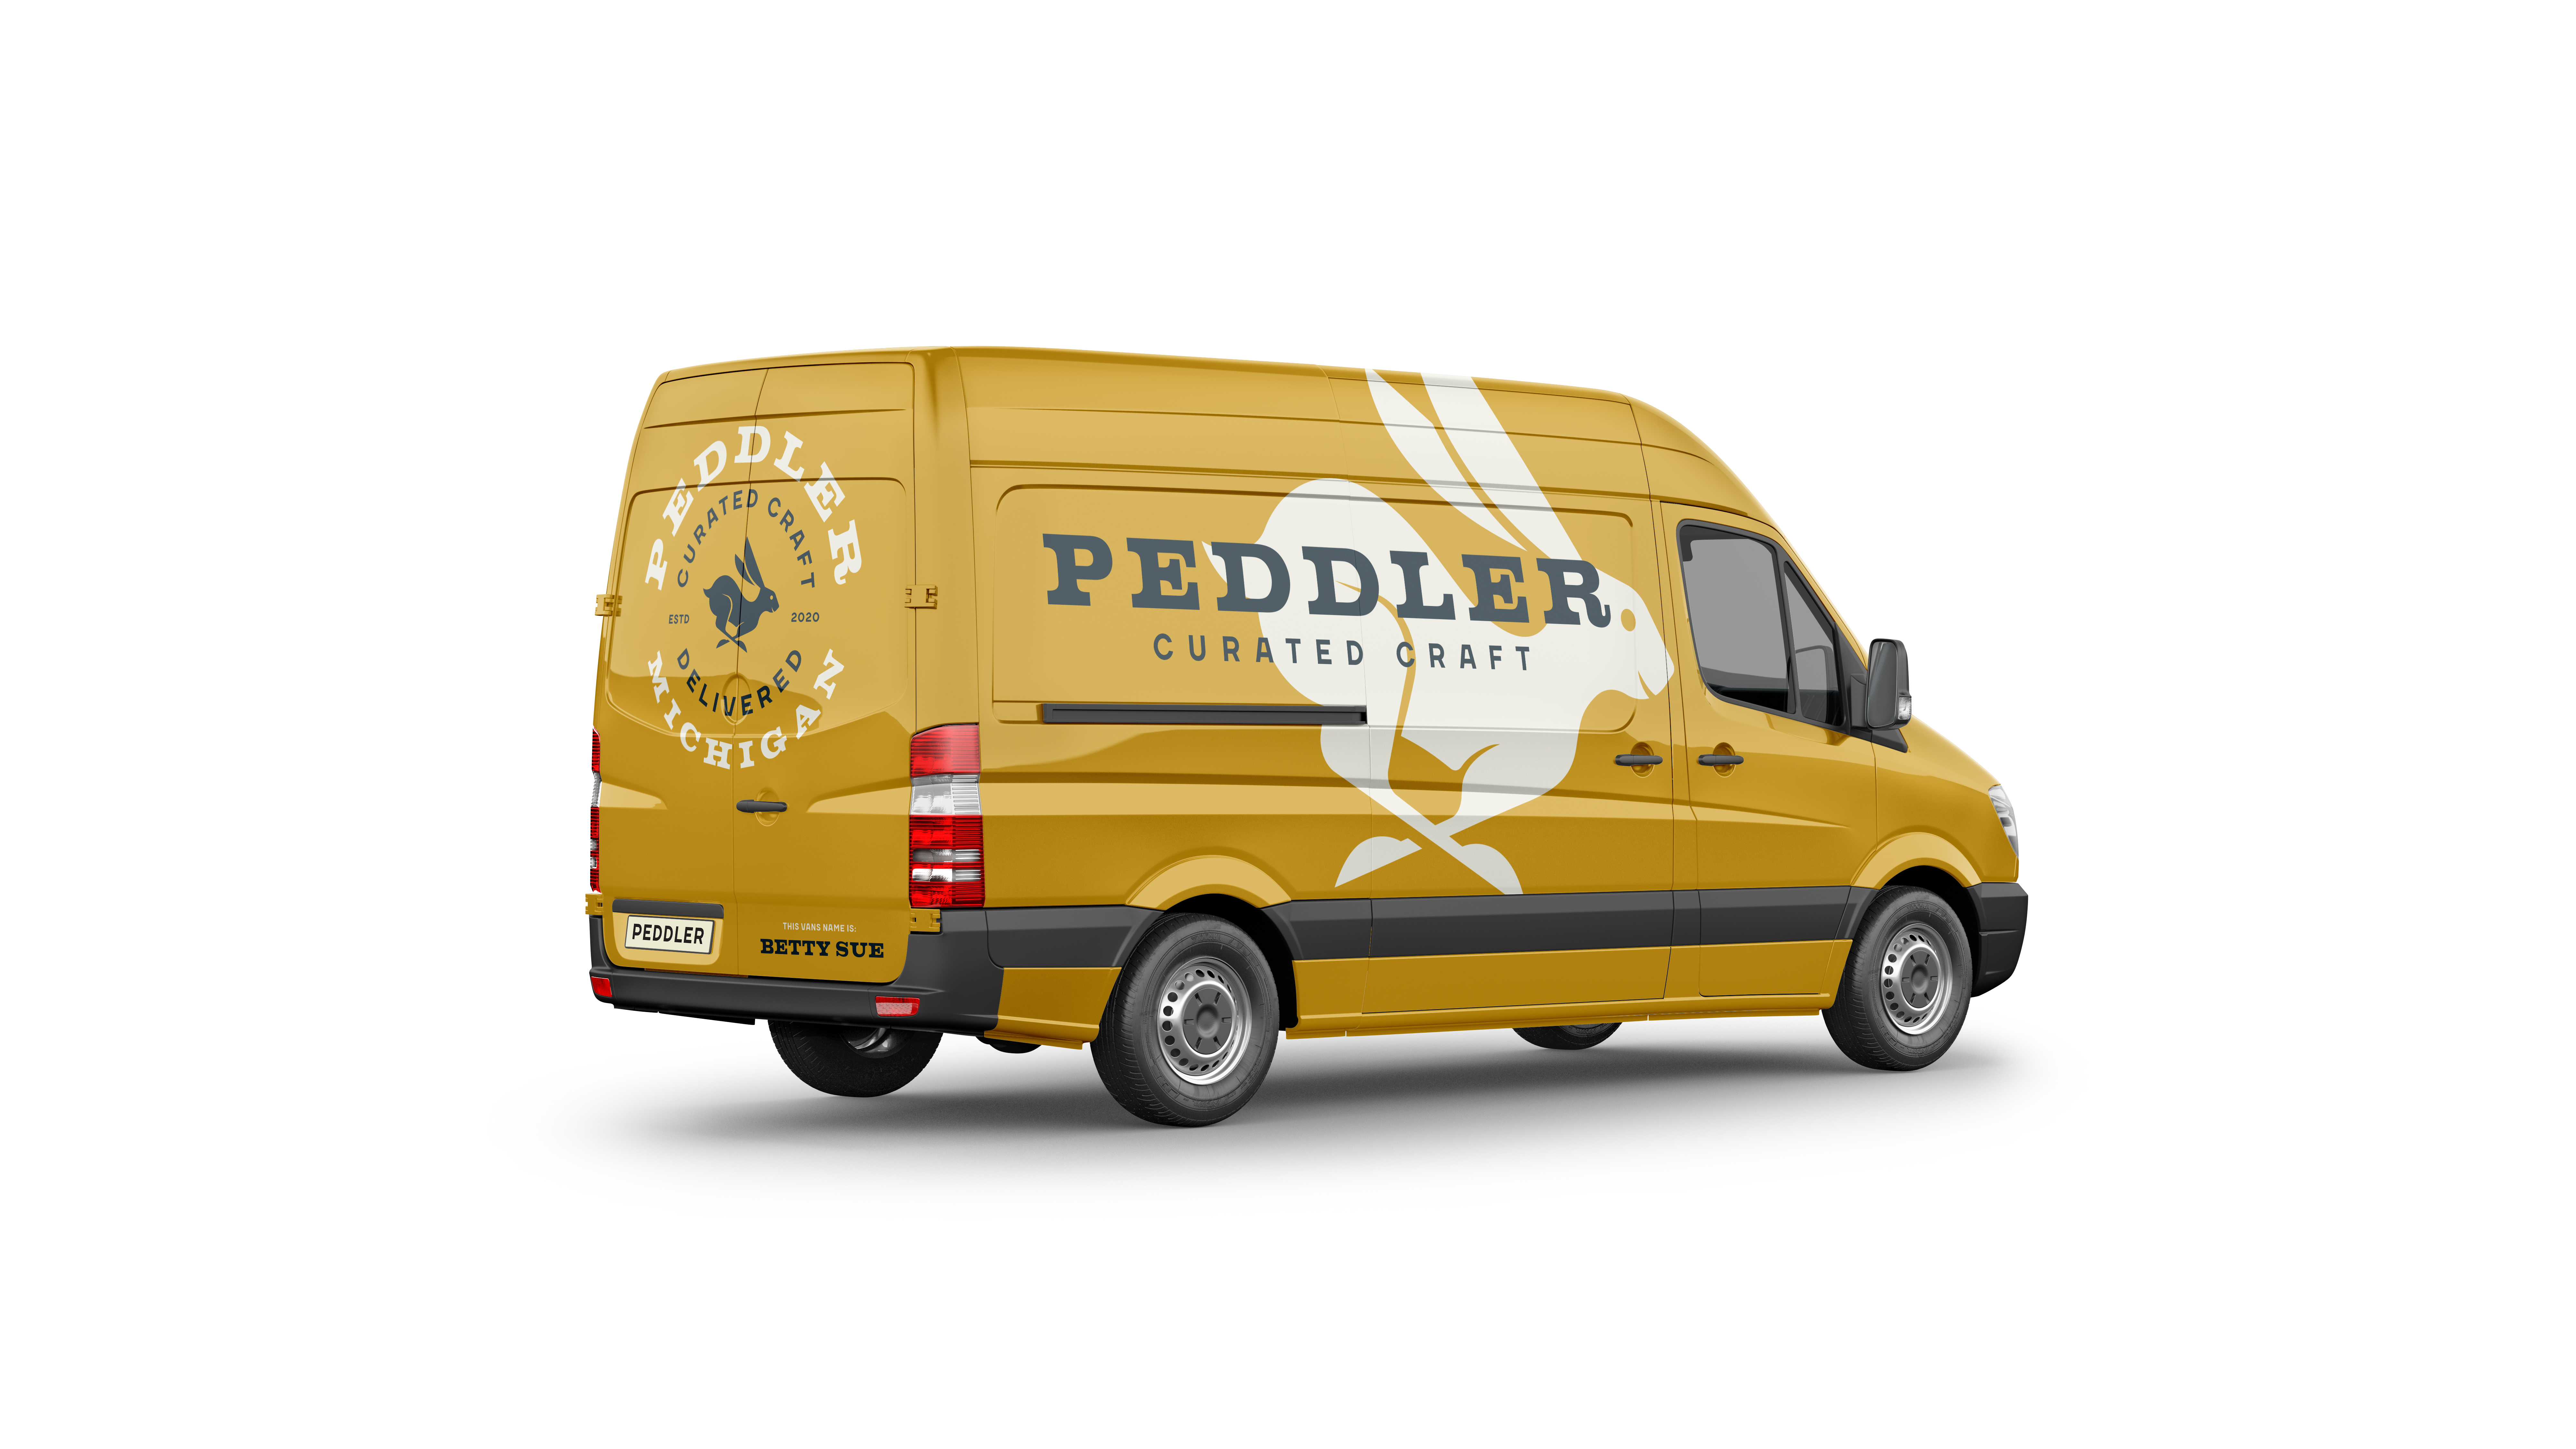 A yellow delivery van with the peddler logo, a jack rabbit, on the side.